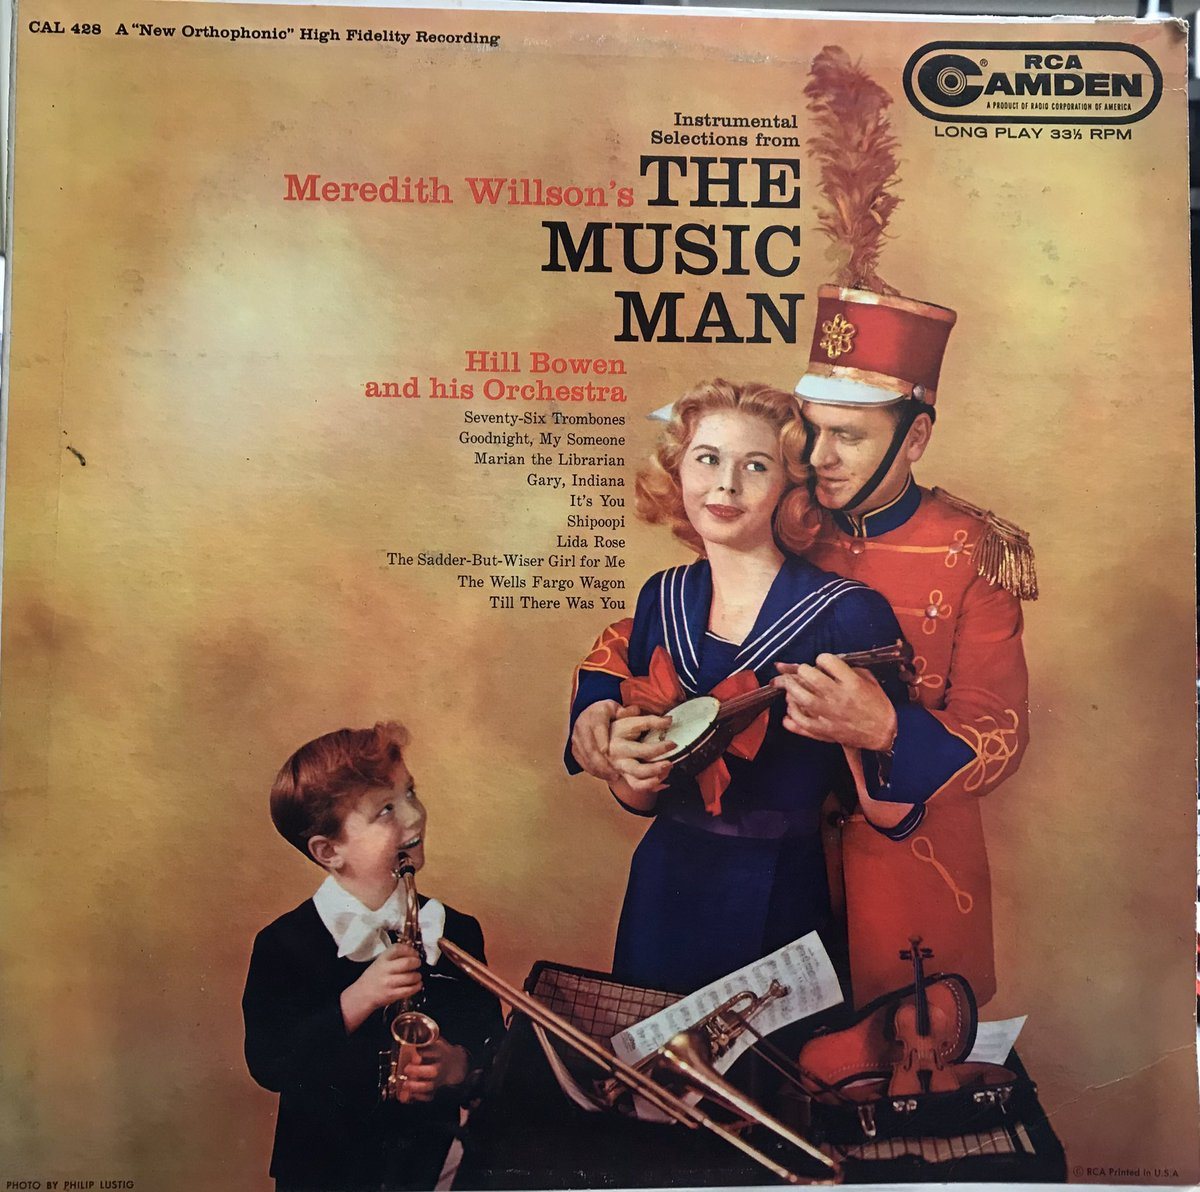 """INSTRUMENTAL SELECTIONS FROM MEREDITH WILLSON'S """"THE MUSIC MAN"""" RCA Camden, 1958  Hill Bowen was a British orchestra conductor and arranger. This recording takes the energy and excitement of the original show and makes it more of an 'easy listening' experience. #themusicman"""